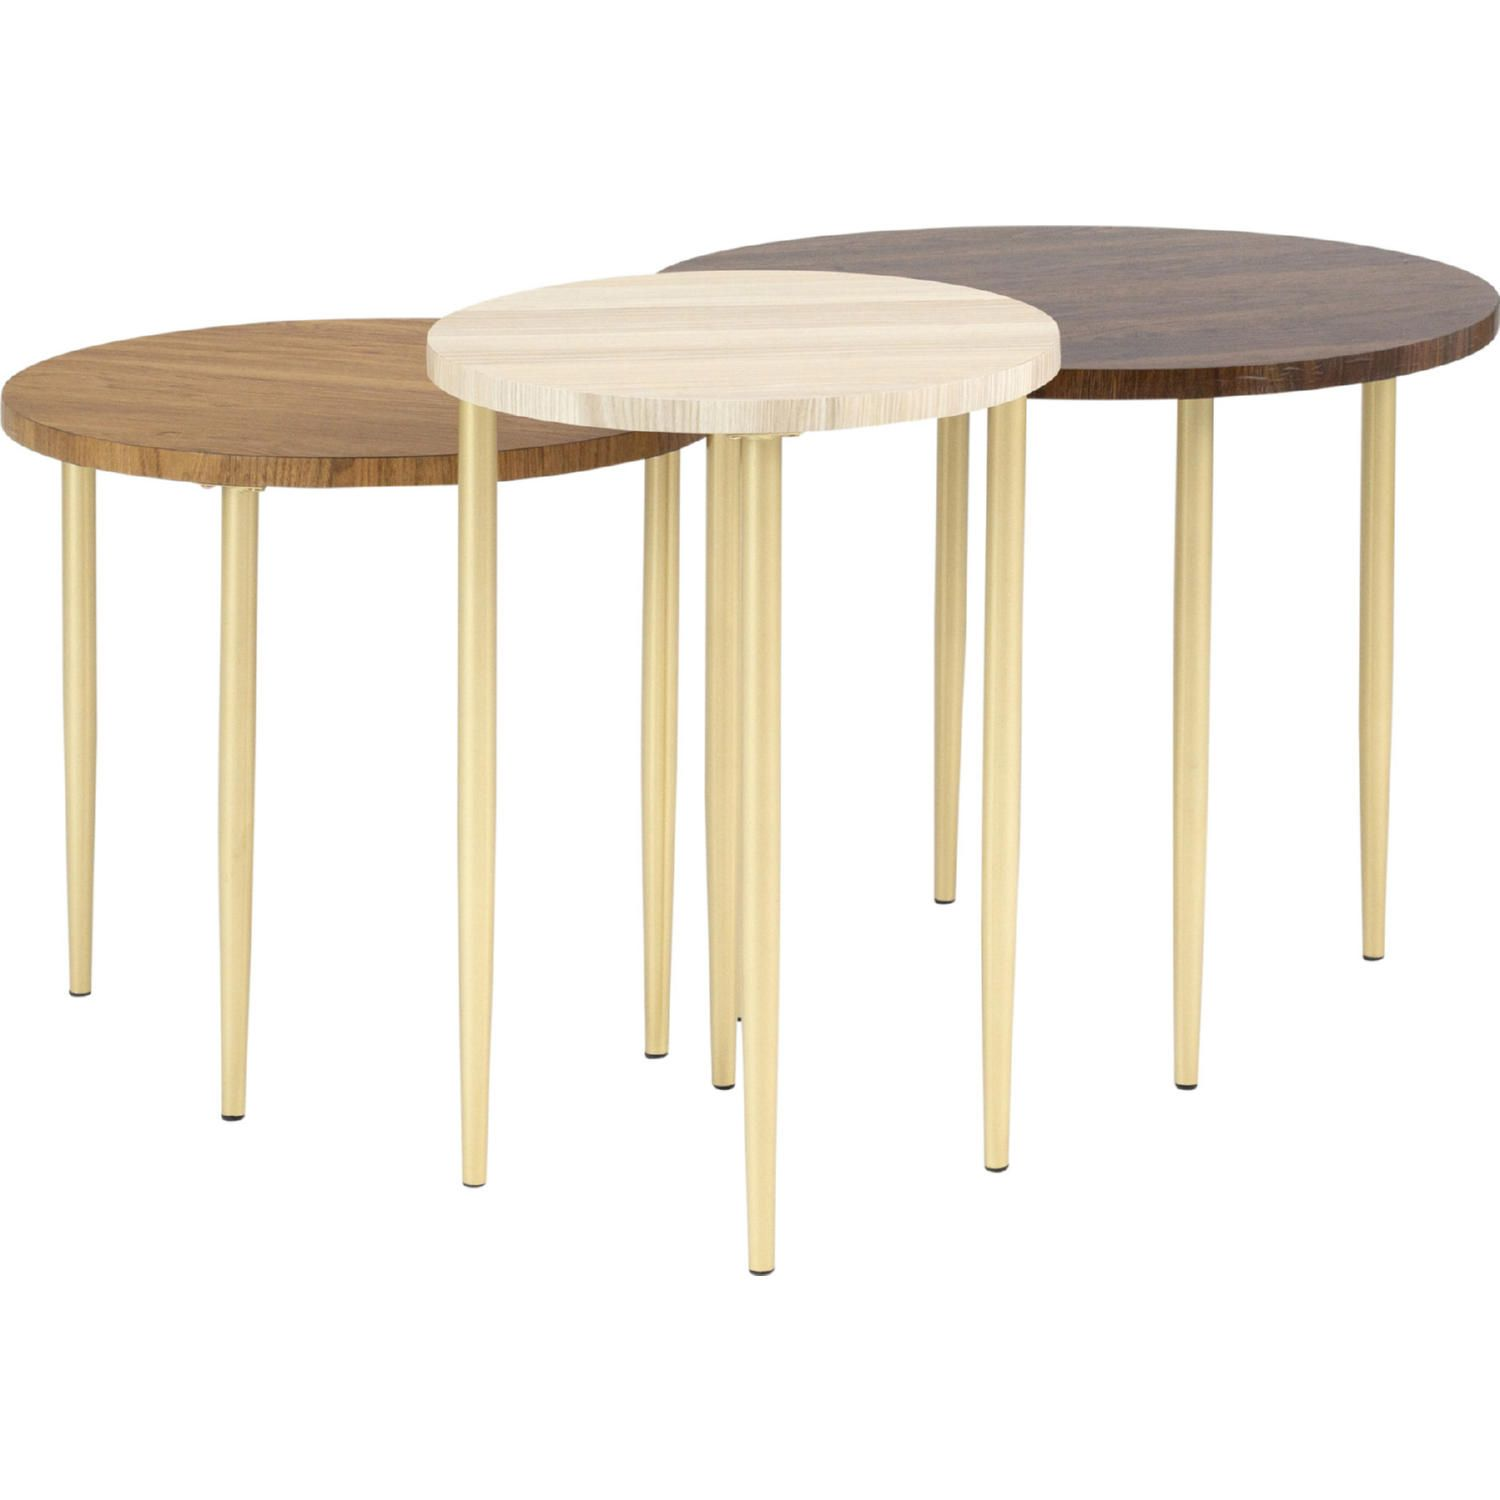 Walker Edison Af3pnestctdw 3 Piece Round Nesting Coffee Table Set